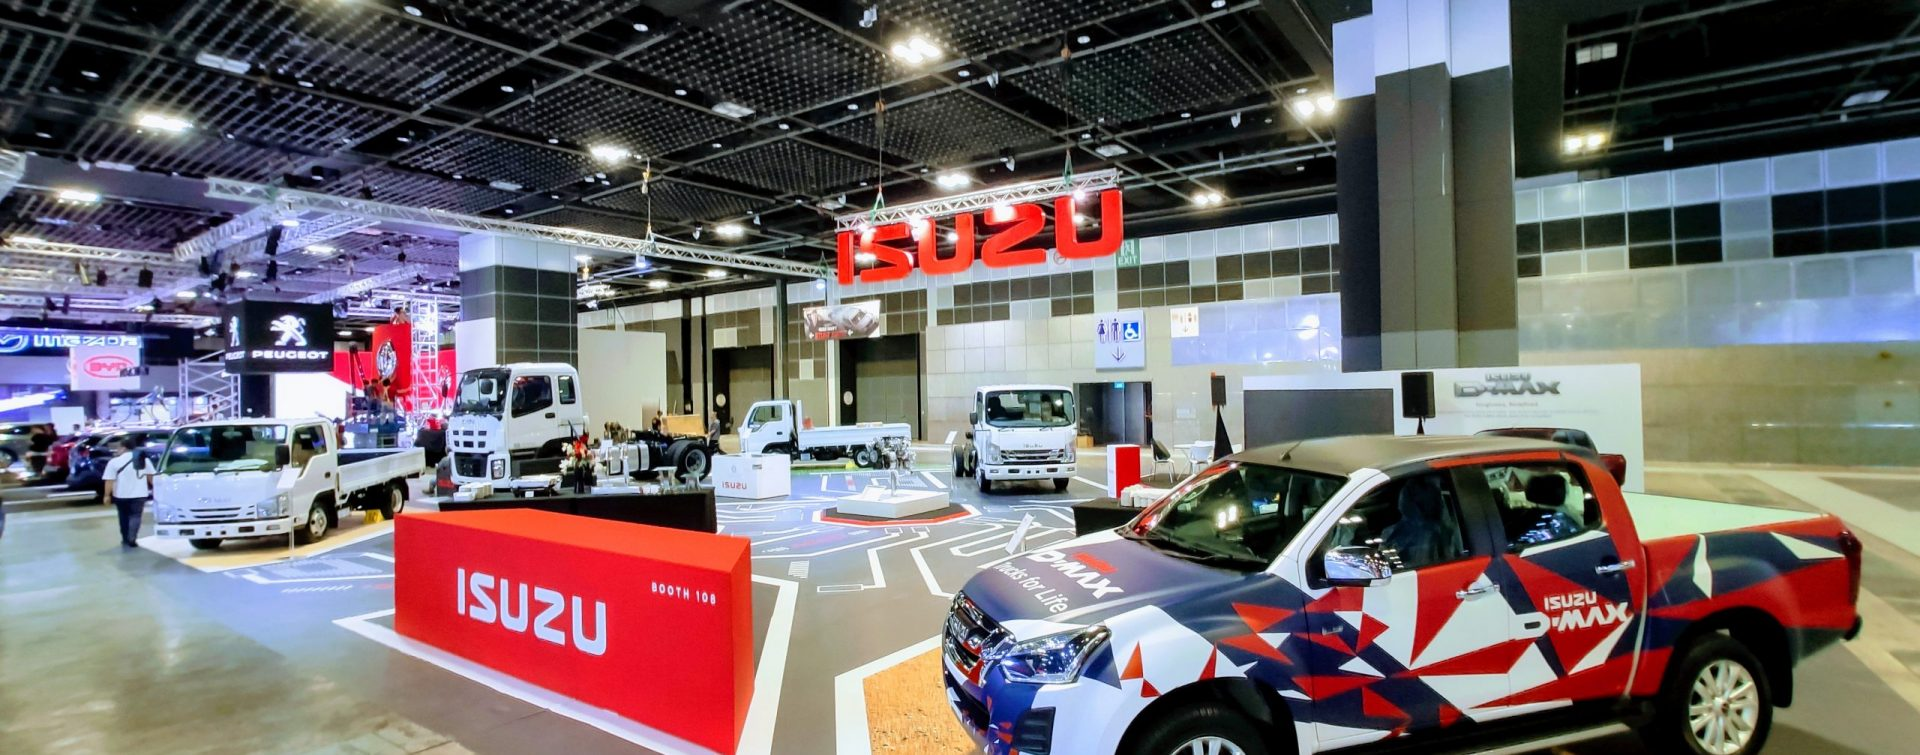 Singapore Motorshow isuzu Messestand